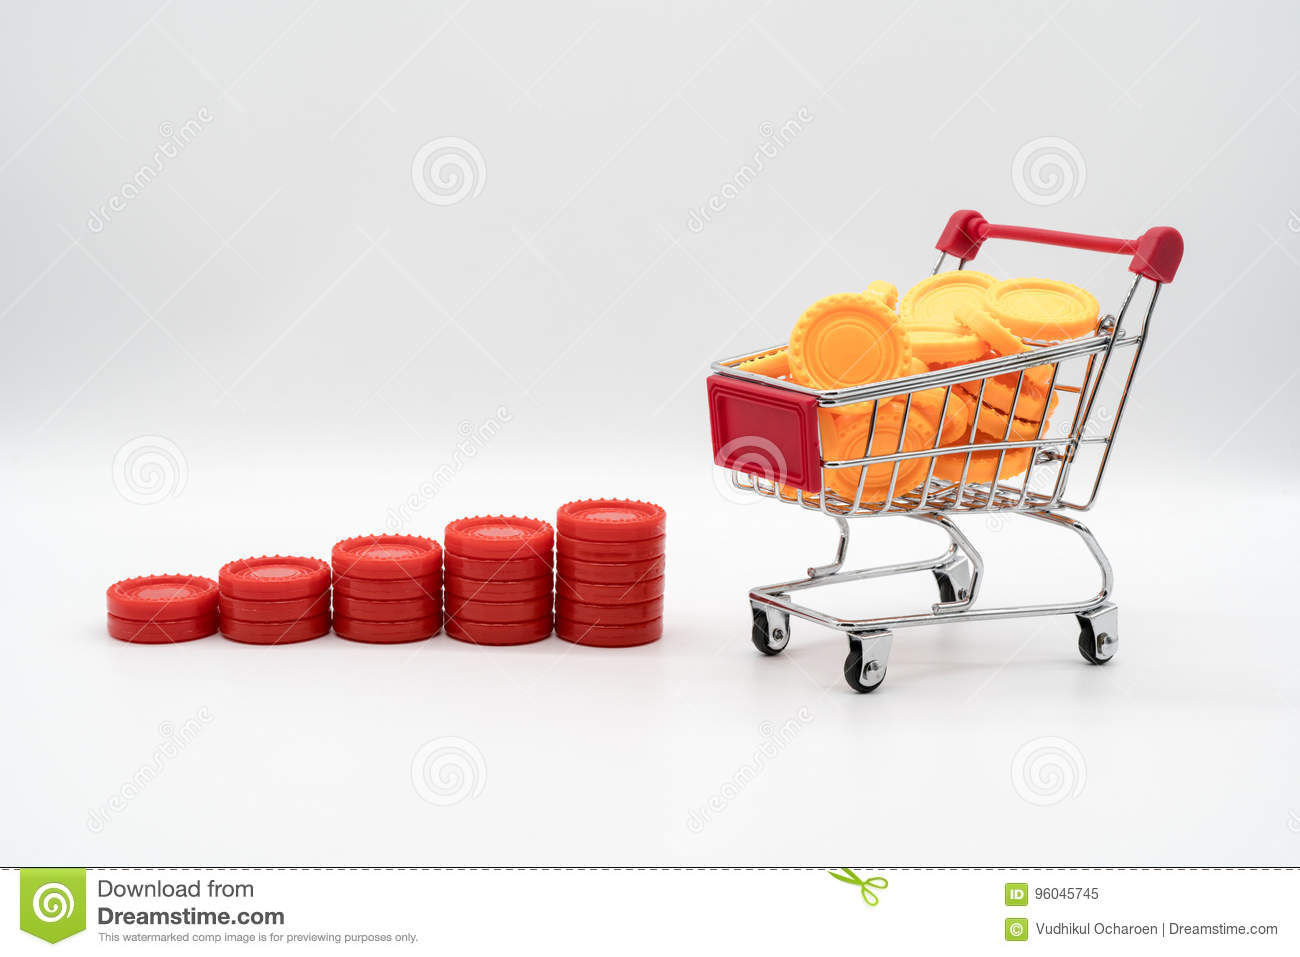 Series Of Red Coin Rising Stacks Next To Shopping Cart